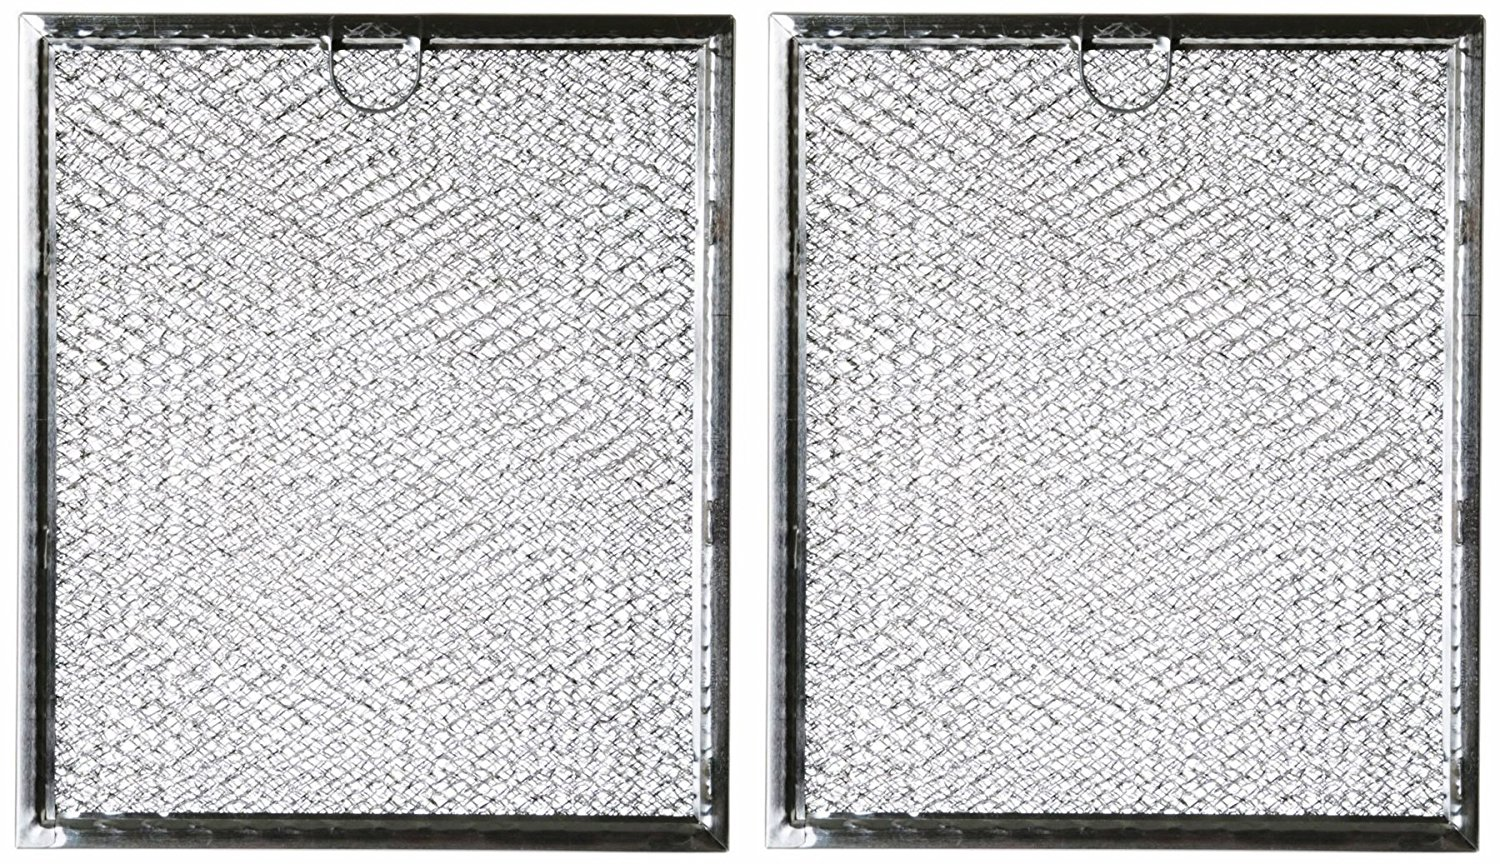 microwave grease filter wb6x486 replacement for many ge microwaves 2 pack bagean